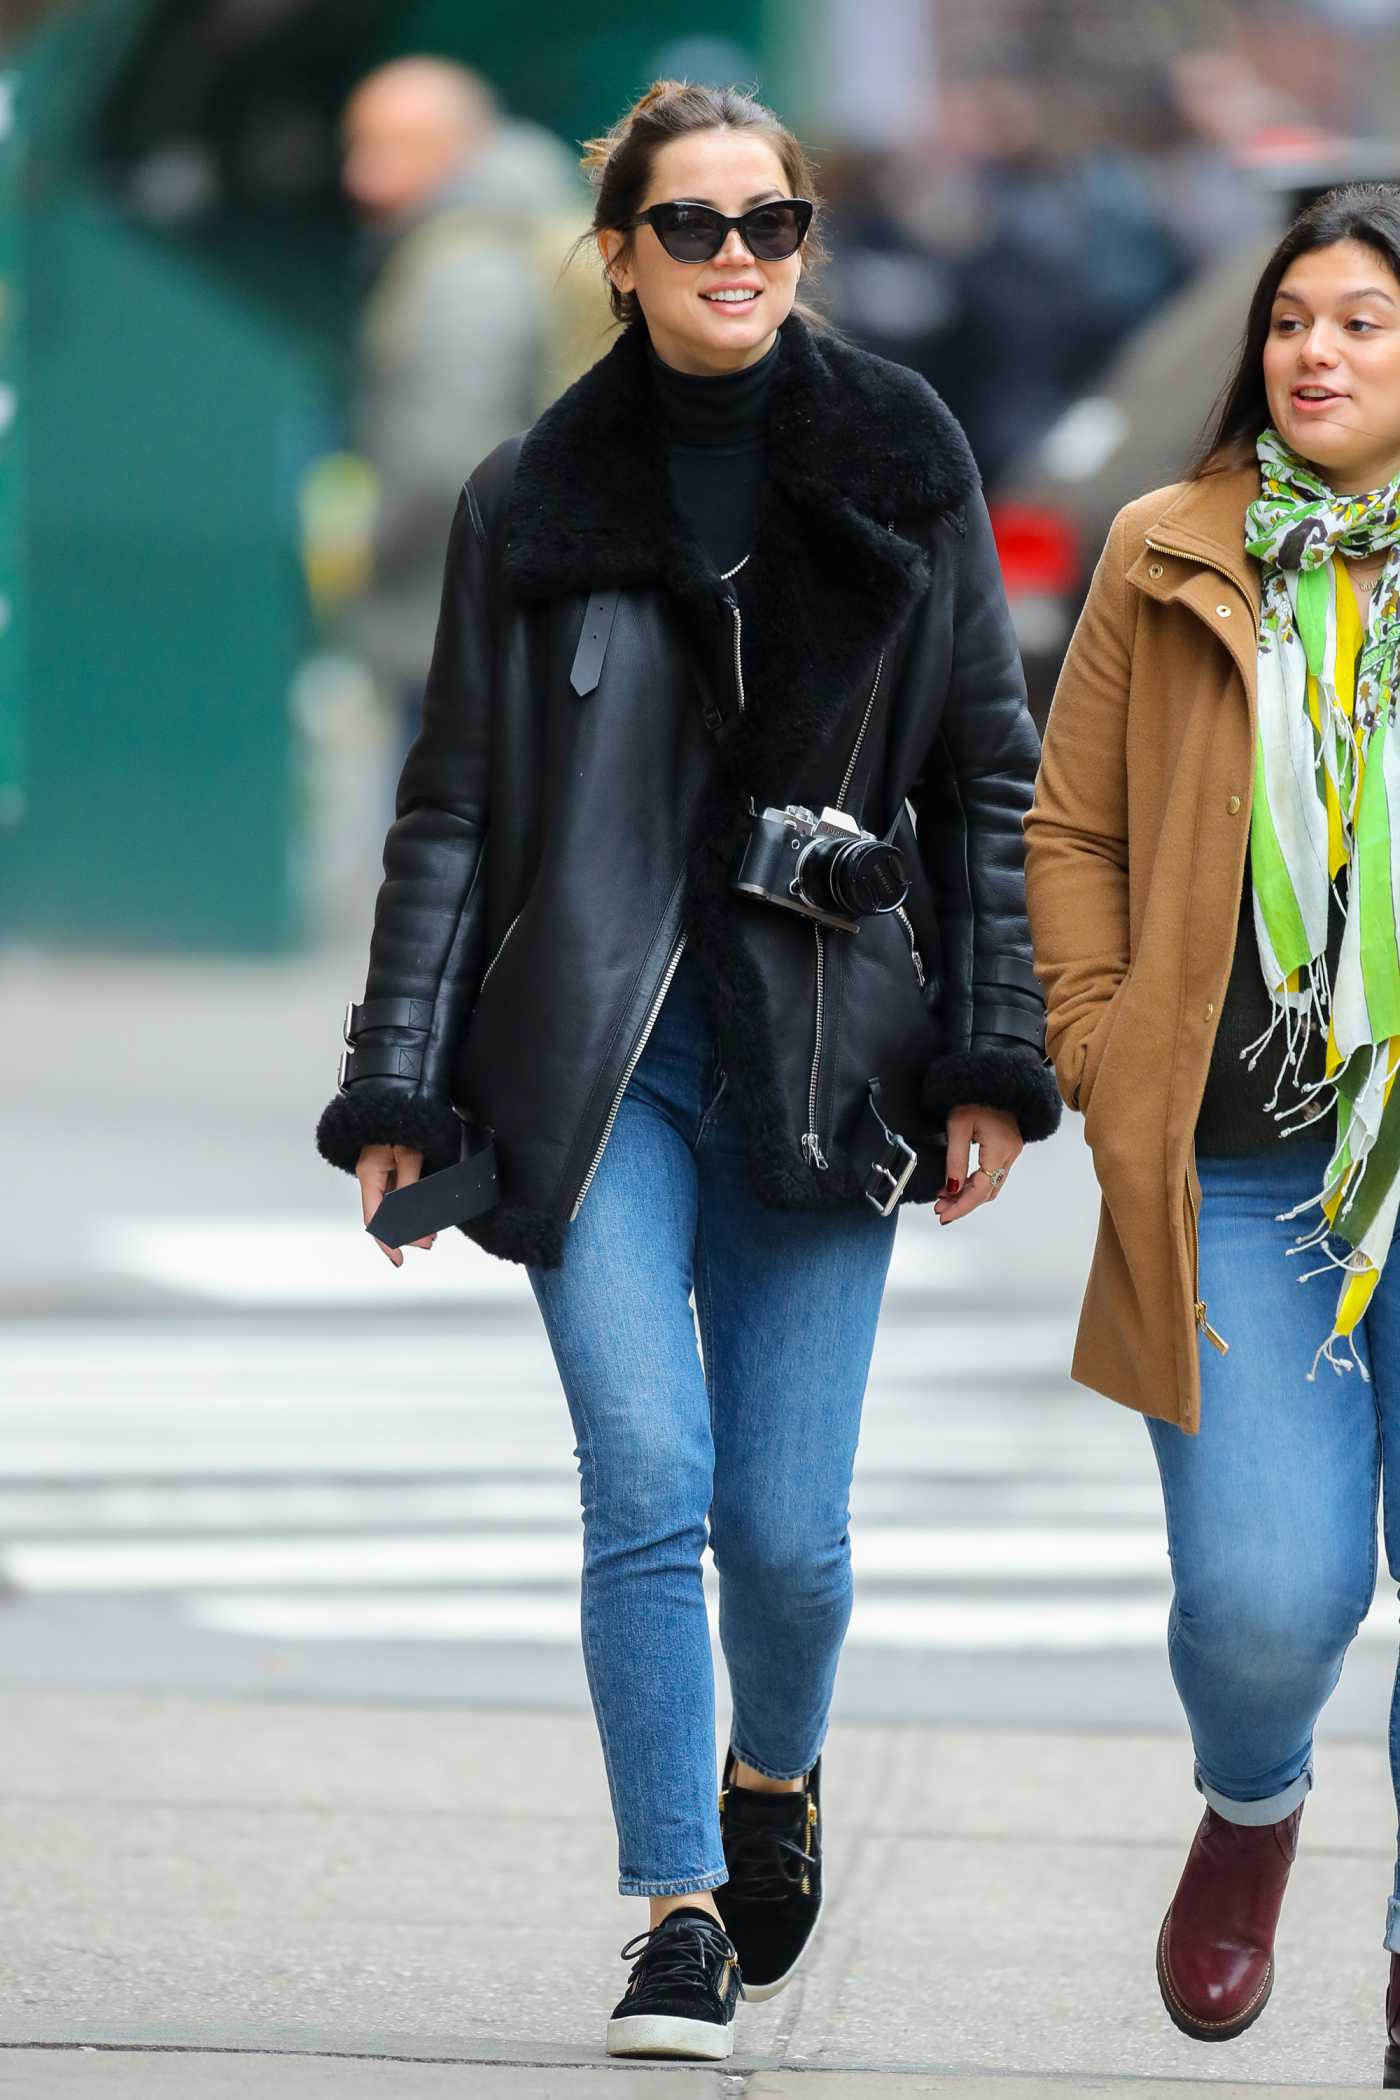 Ana de Armas in a Black Sheepskin Jacket Was Seen Out in New York City 02/18/2020